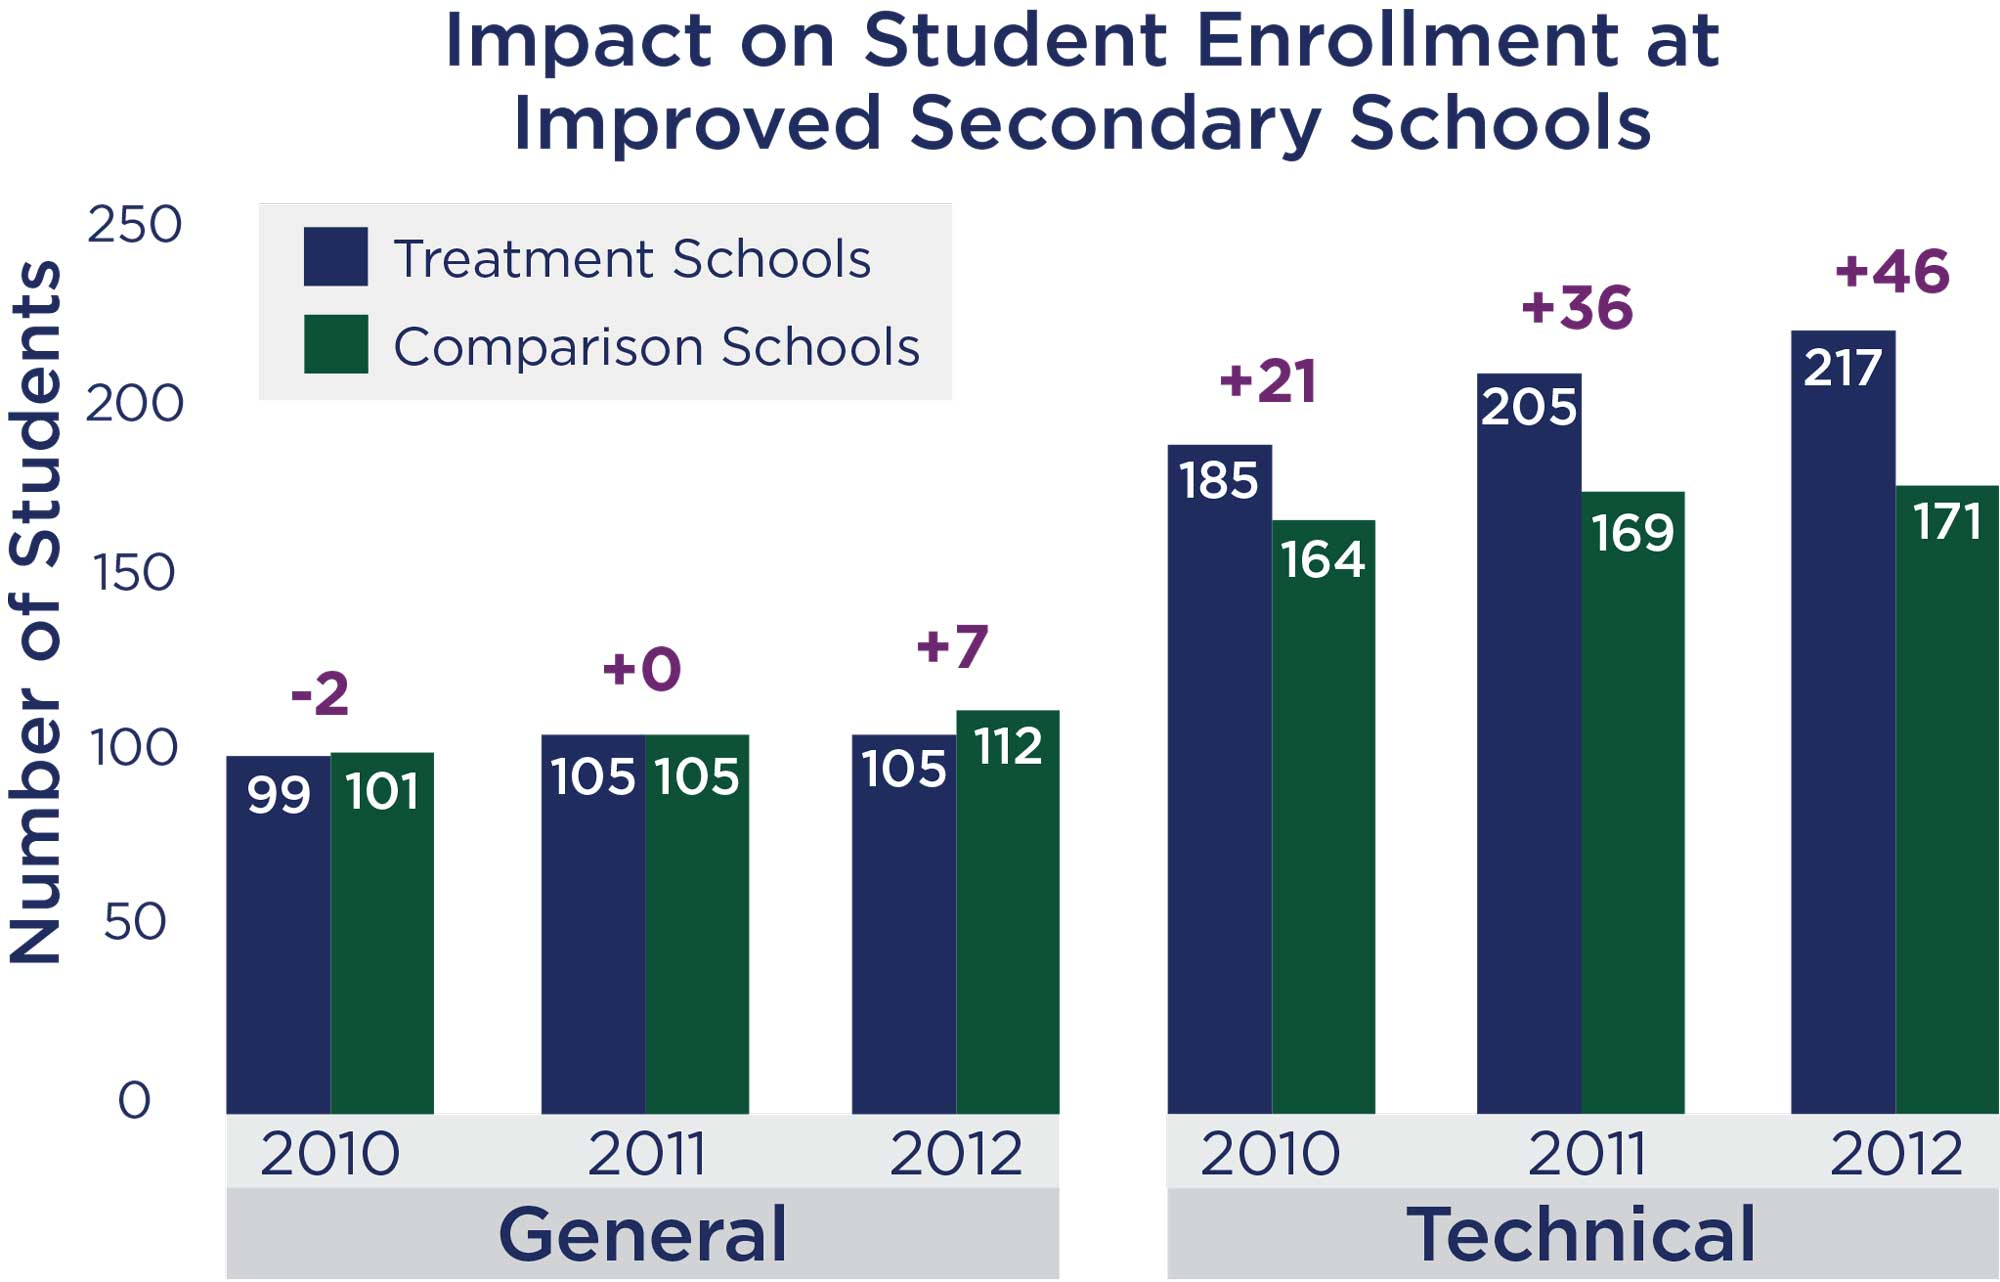 Impact on Student Enrollment at Improved Secondary Schools